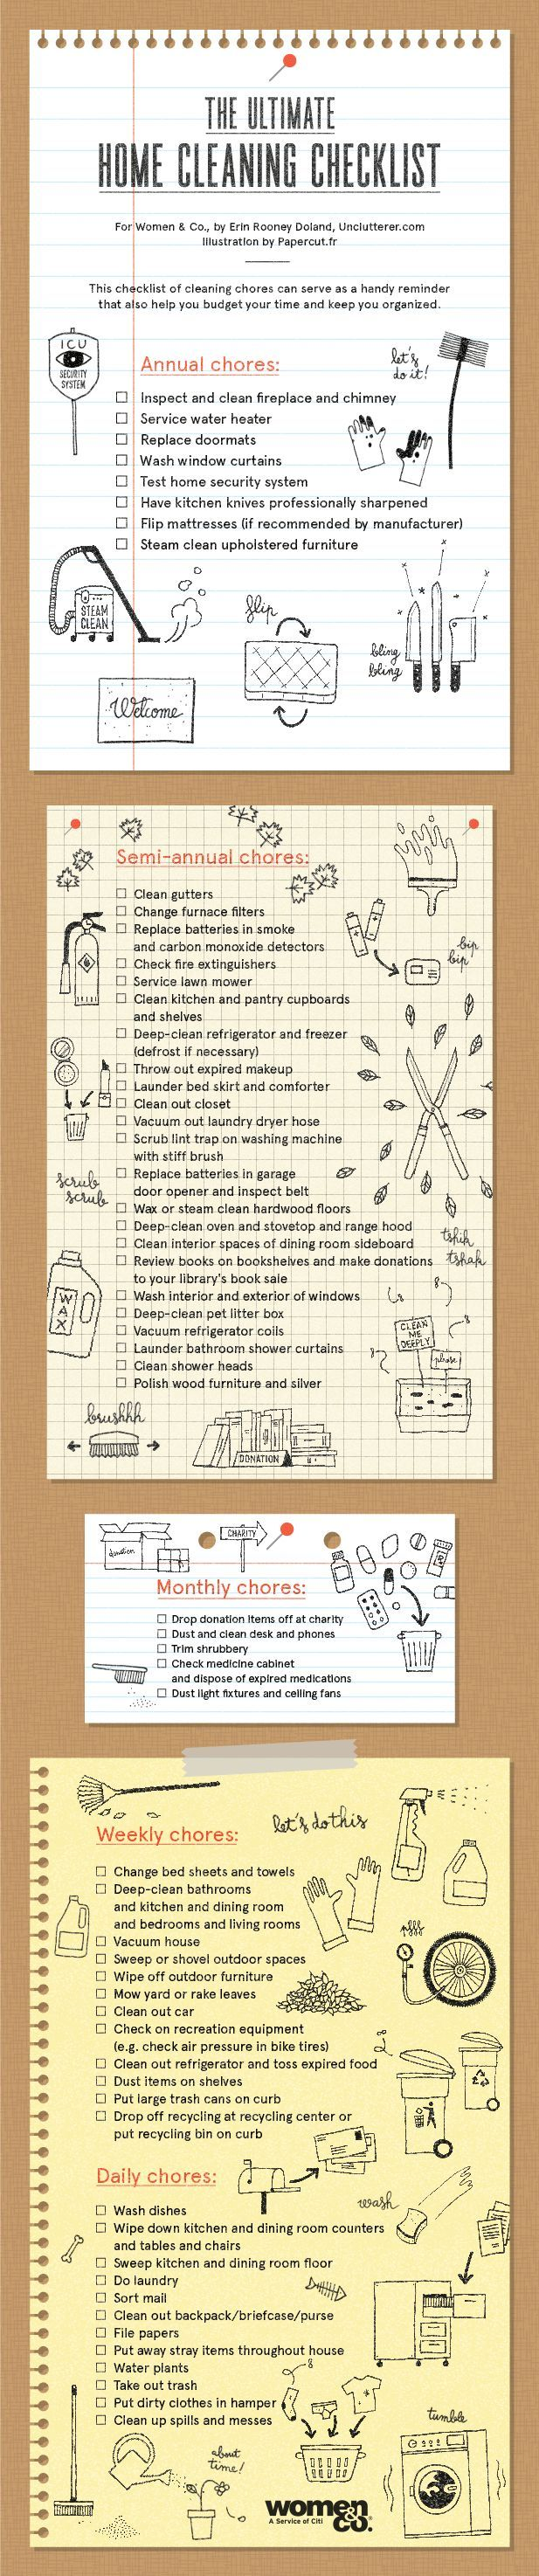 Bathroom checklist for cleaning - Need This Ultimate Home Cleaning Checklist